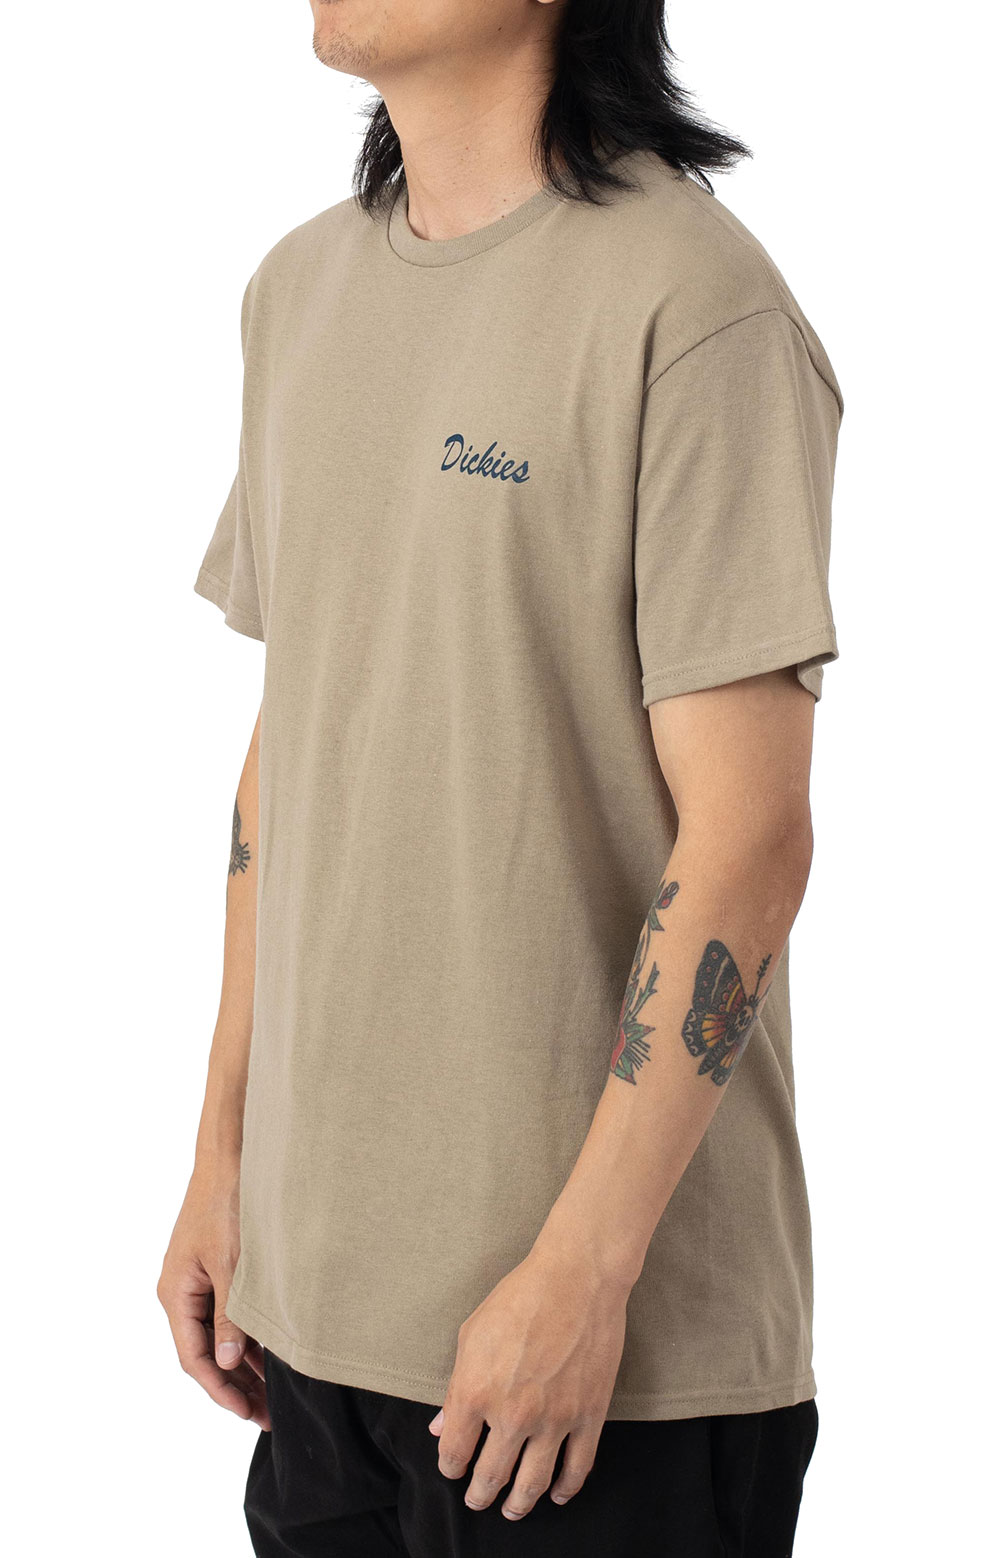 (WSS21S9) On The Job Graphic T-Shirt - Sand  3